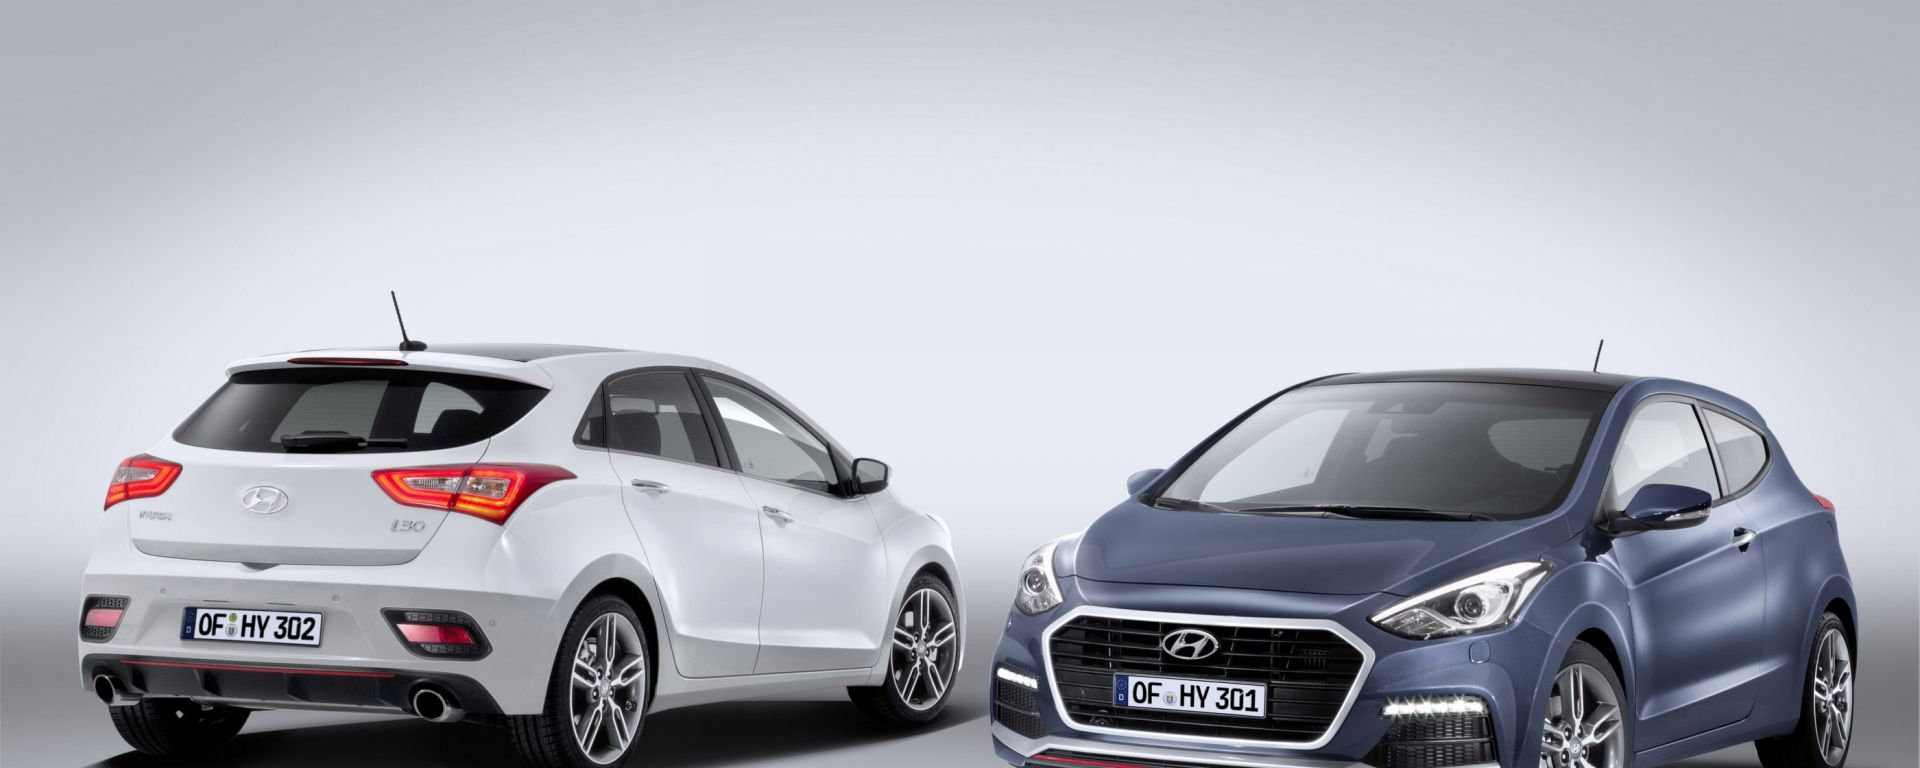 Hyundai i30 2015 restyling e i30 Turbo